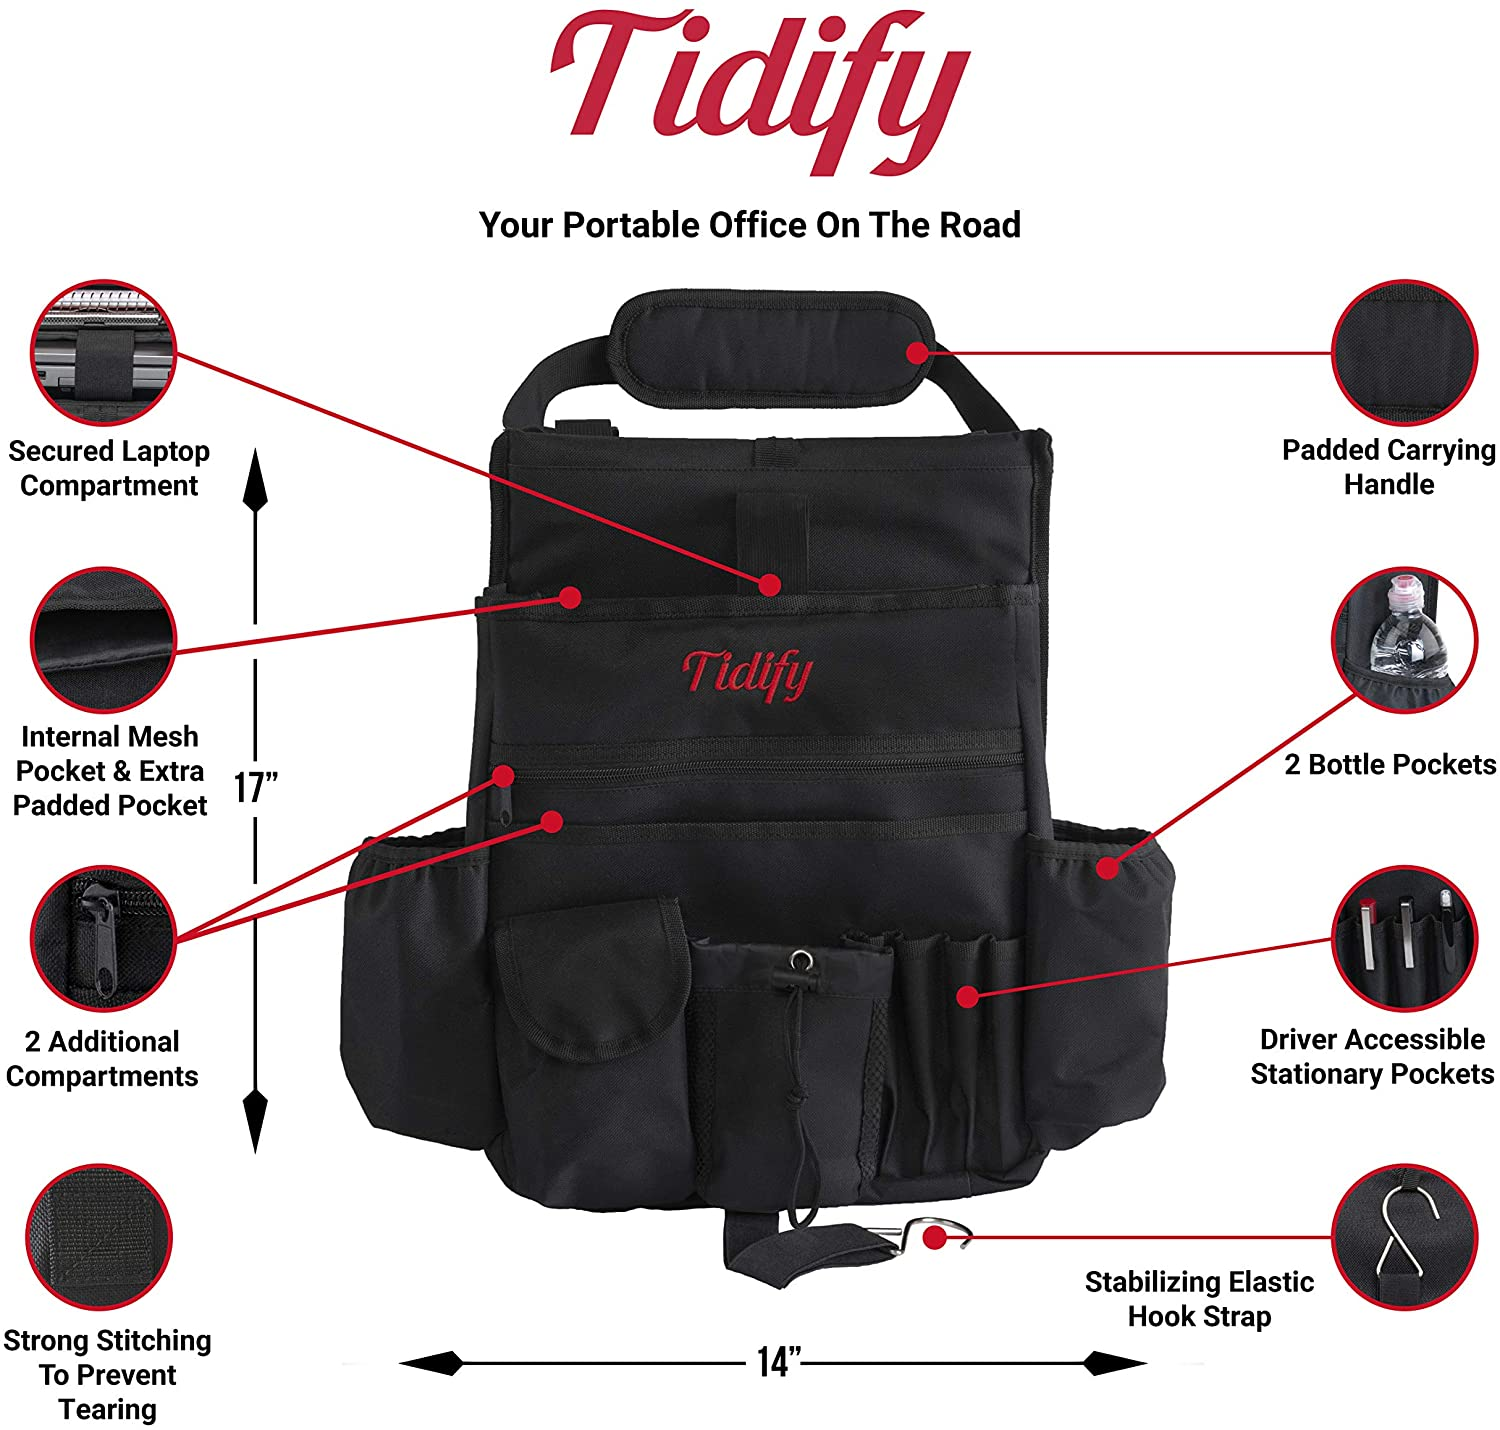 Soft Adjustable Shoulder Strap and Hardened Buckles Your Office Away from Office Stabilizing Side Straps Dedicated Tablet//Laptop Storage Tidify Car Front Seat Organizer with Rain//Stealth Cover